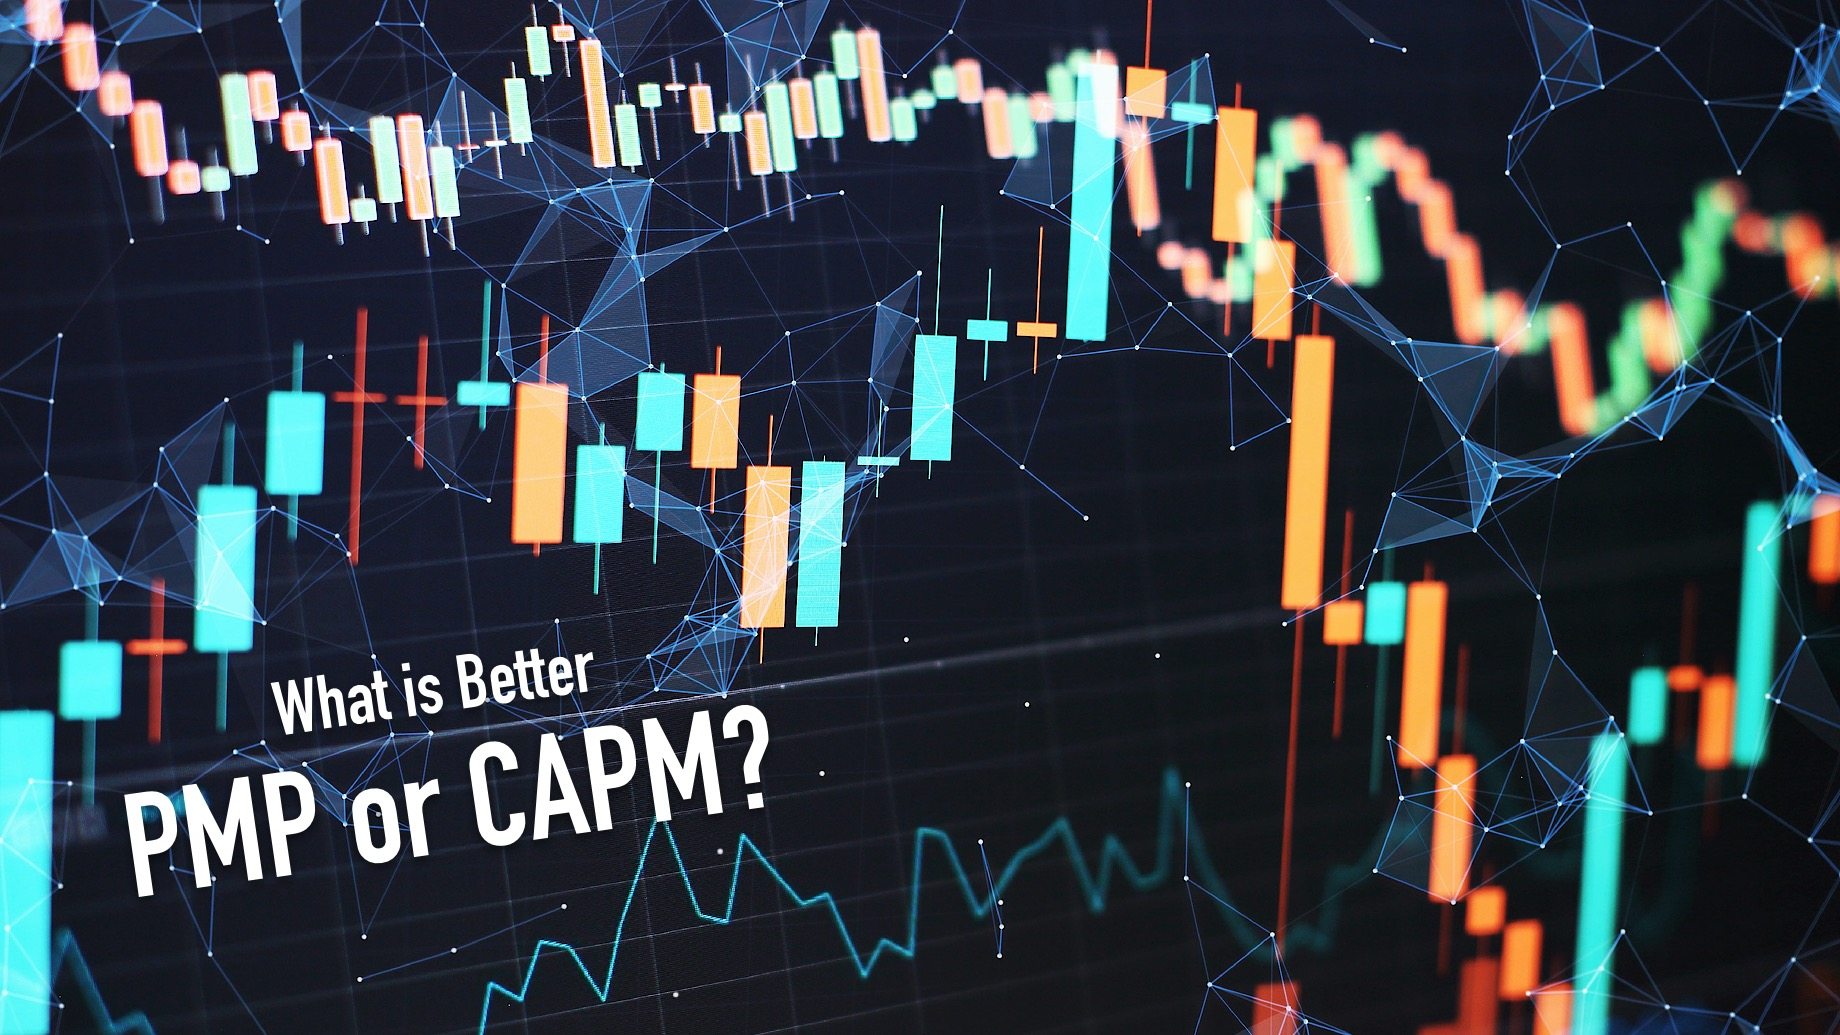 What is Better, PMP or CAPM?